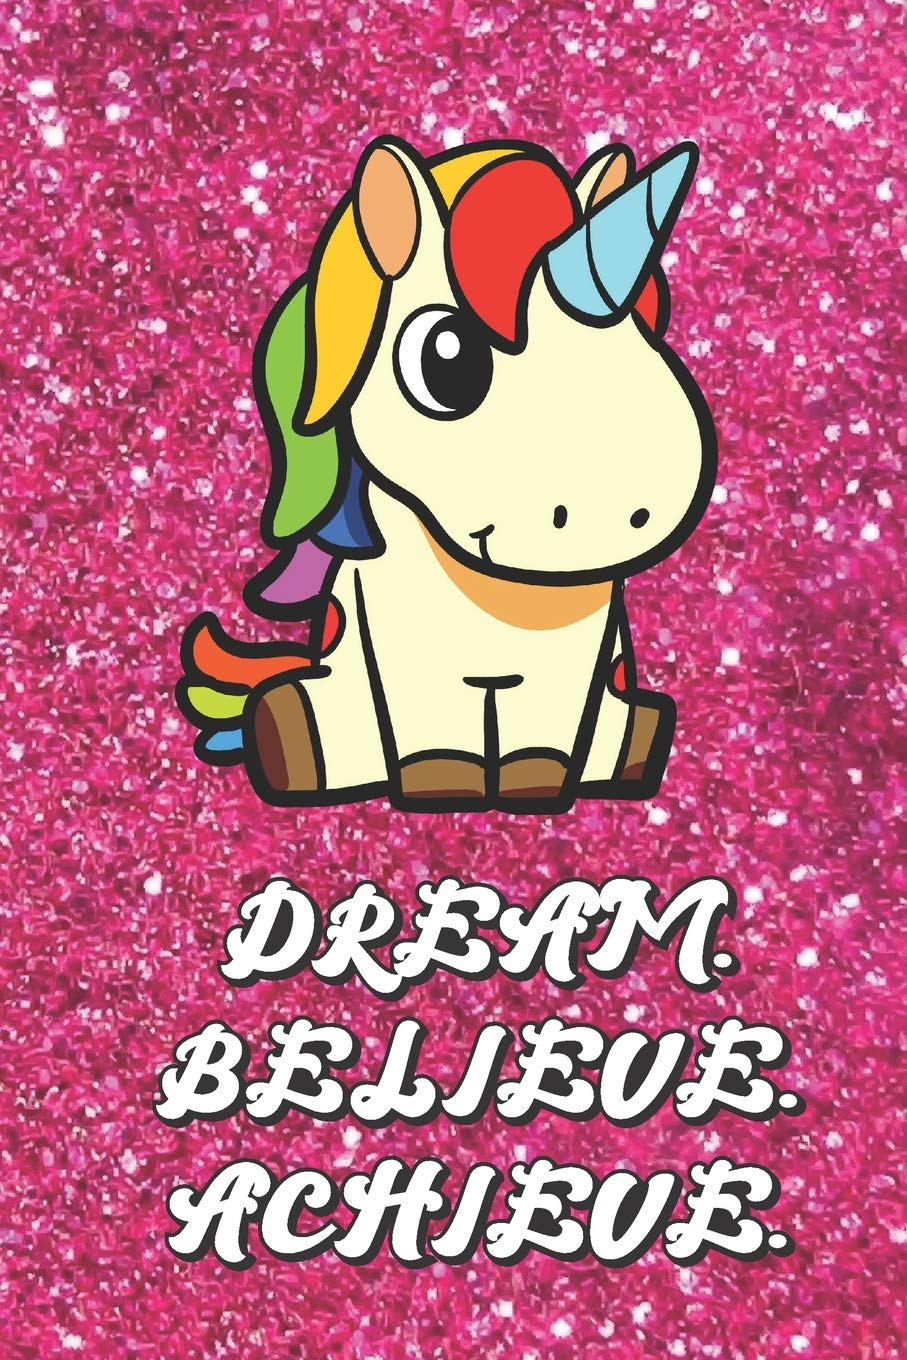 Amazon Com Dream Believe Achieve Cartoon Cute Rainbow Unicorn Art Cover With Pink Glitter Effect Background Inspirational Blank Journal Book For Girls And Boys Sketching Coloring Kids Drawing Books 9781093543681 Publishing